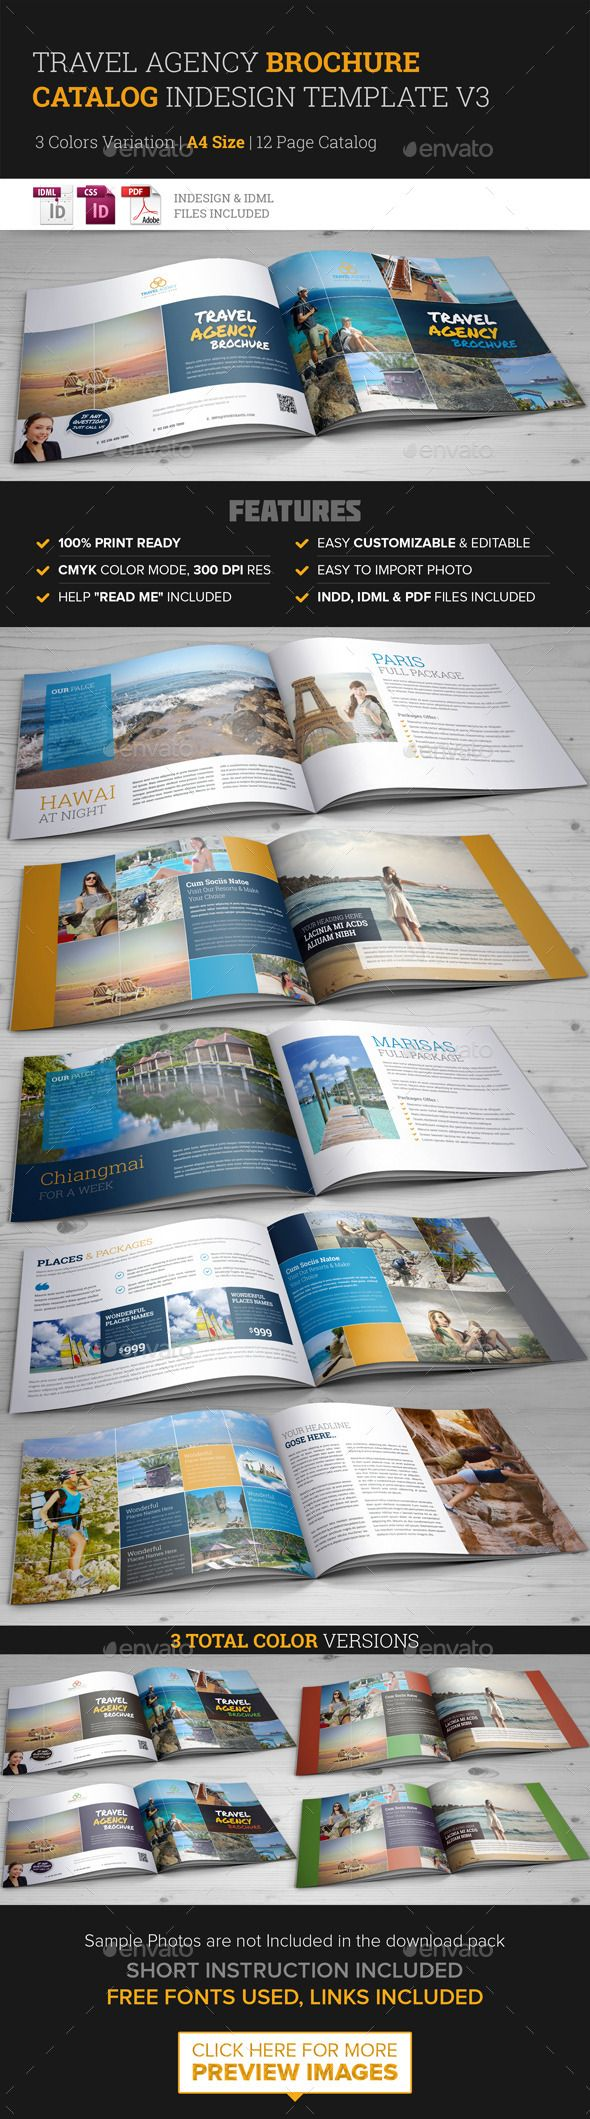 travel agency brochure template - 138 best images about tourism travel layout on pinterest